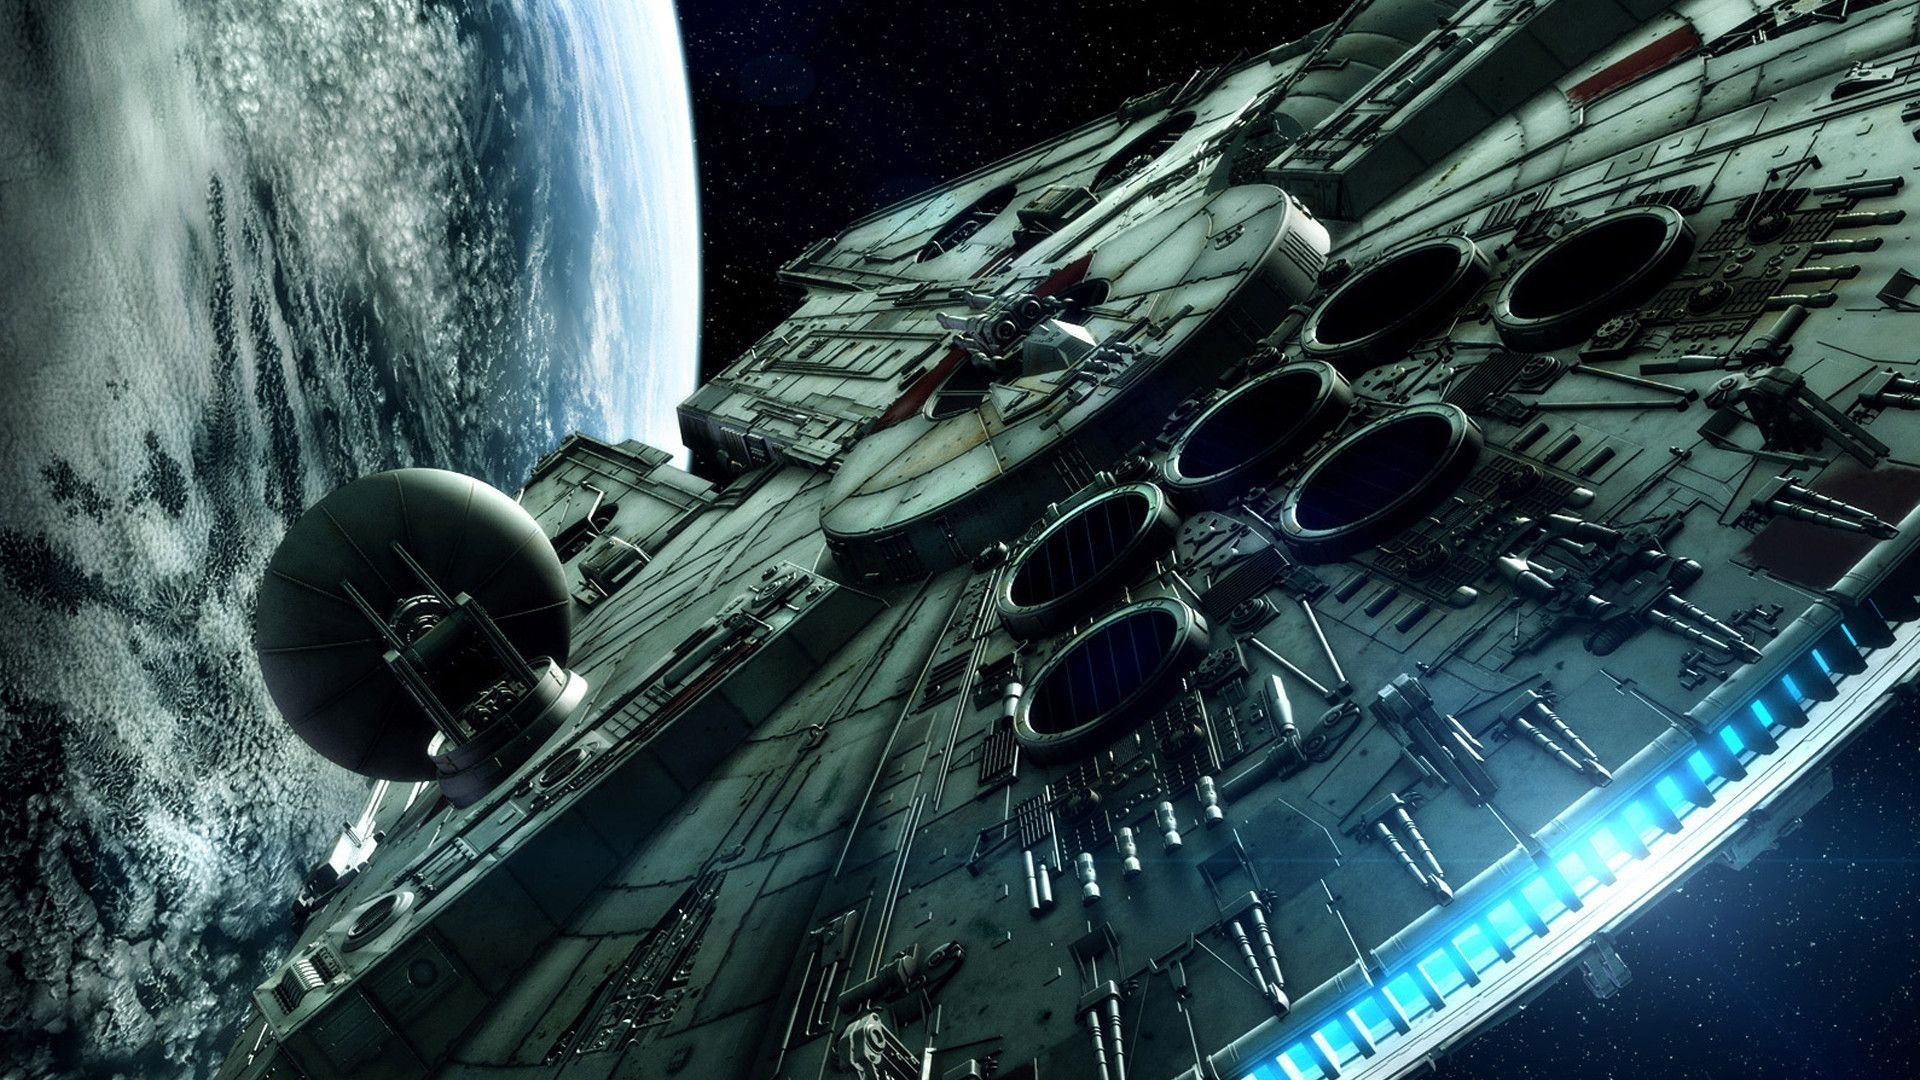 star wars wallpapers, awesome star wars pictures and wallpapers (48+